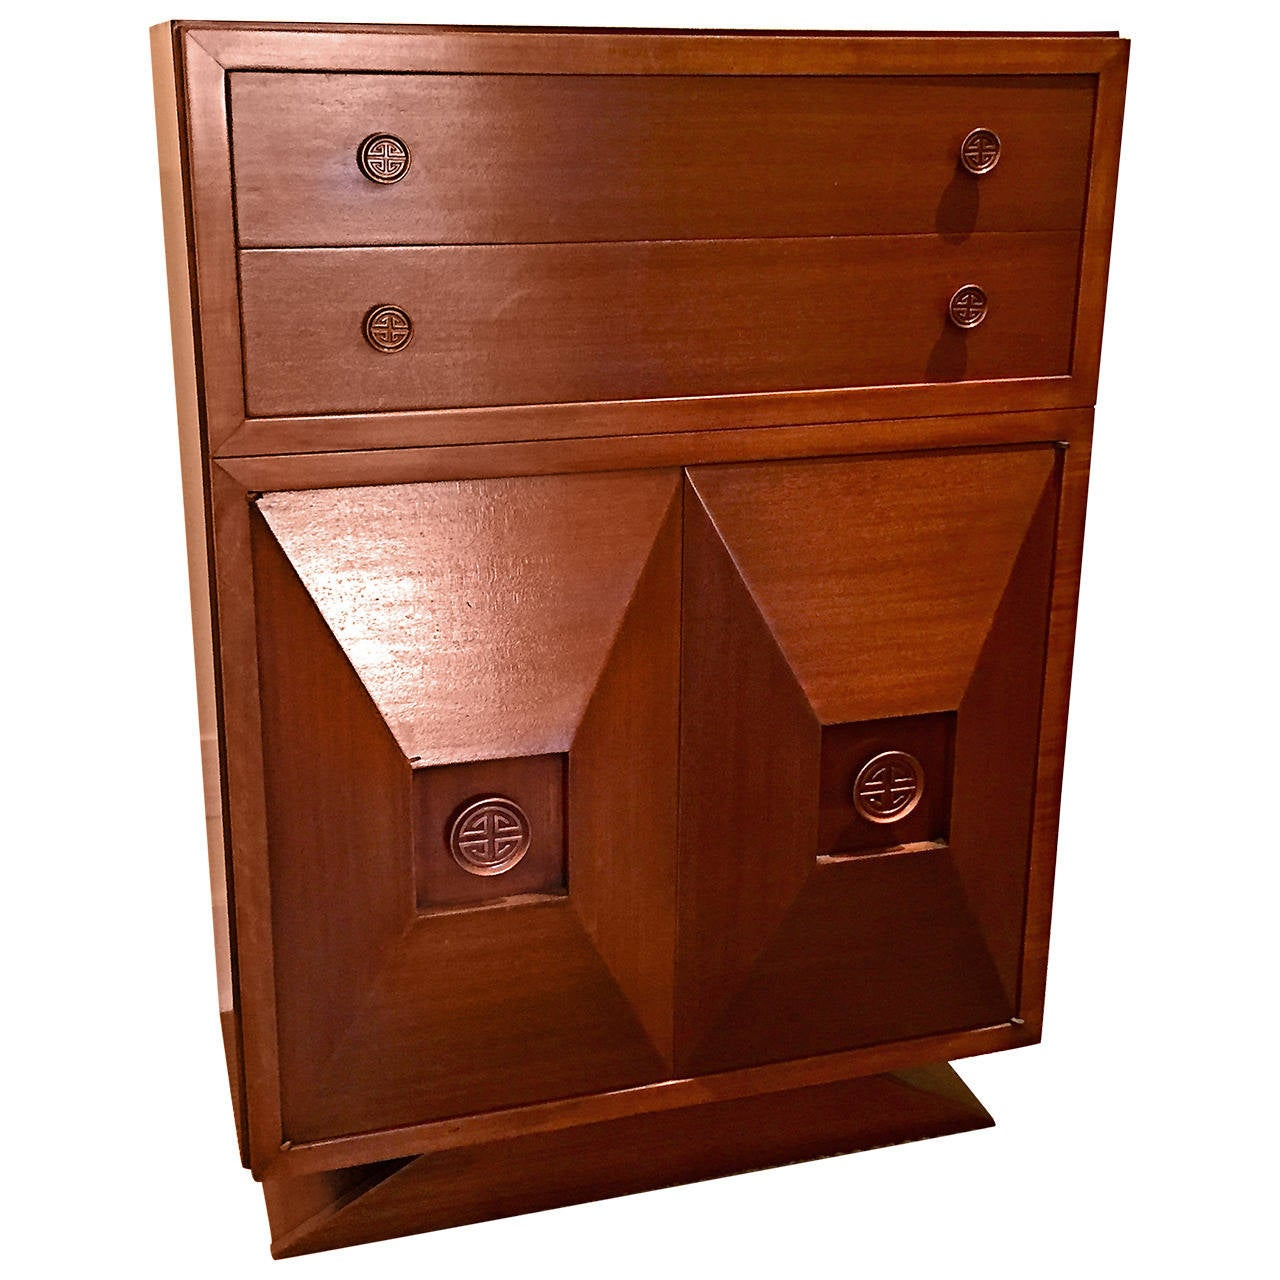 Tall Cuban Mahogany Chest of Drawers in the Style of James Mont